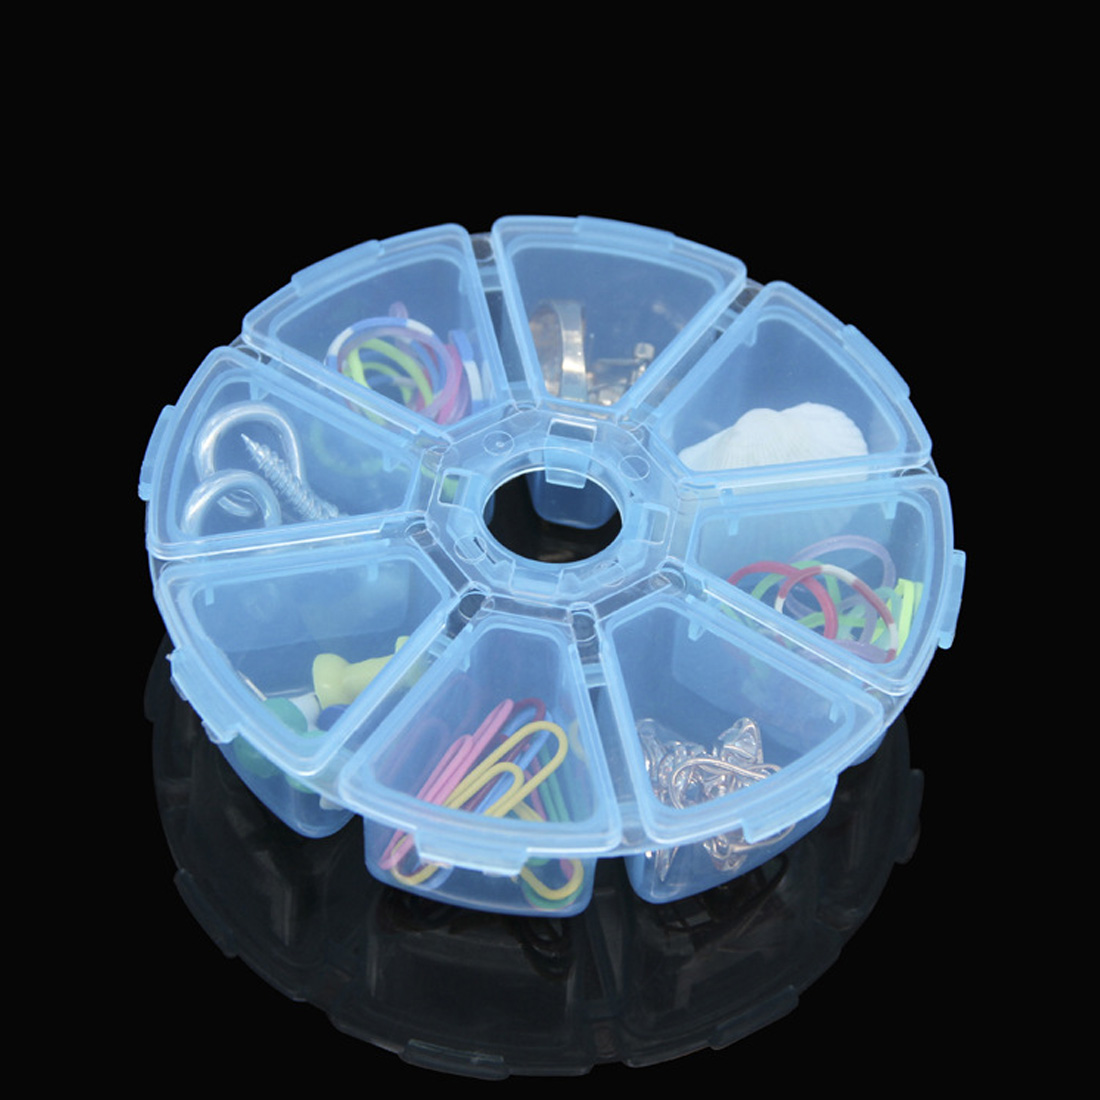 8 Lattices Round Clear Plastic Storage Box Case <font><b>for</b></font> Jewelry <font><b>Beads</b></font> <font><b>Organizer</b></font> Button Container Box <font><b>For</b></font> Jewelry image